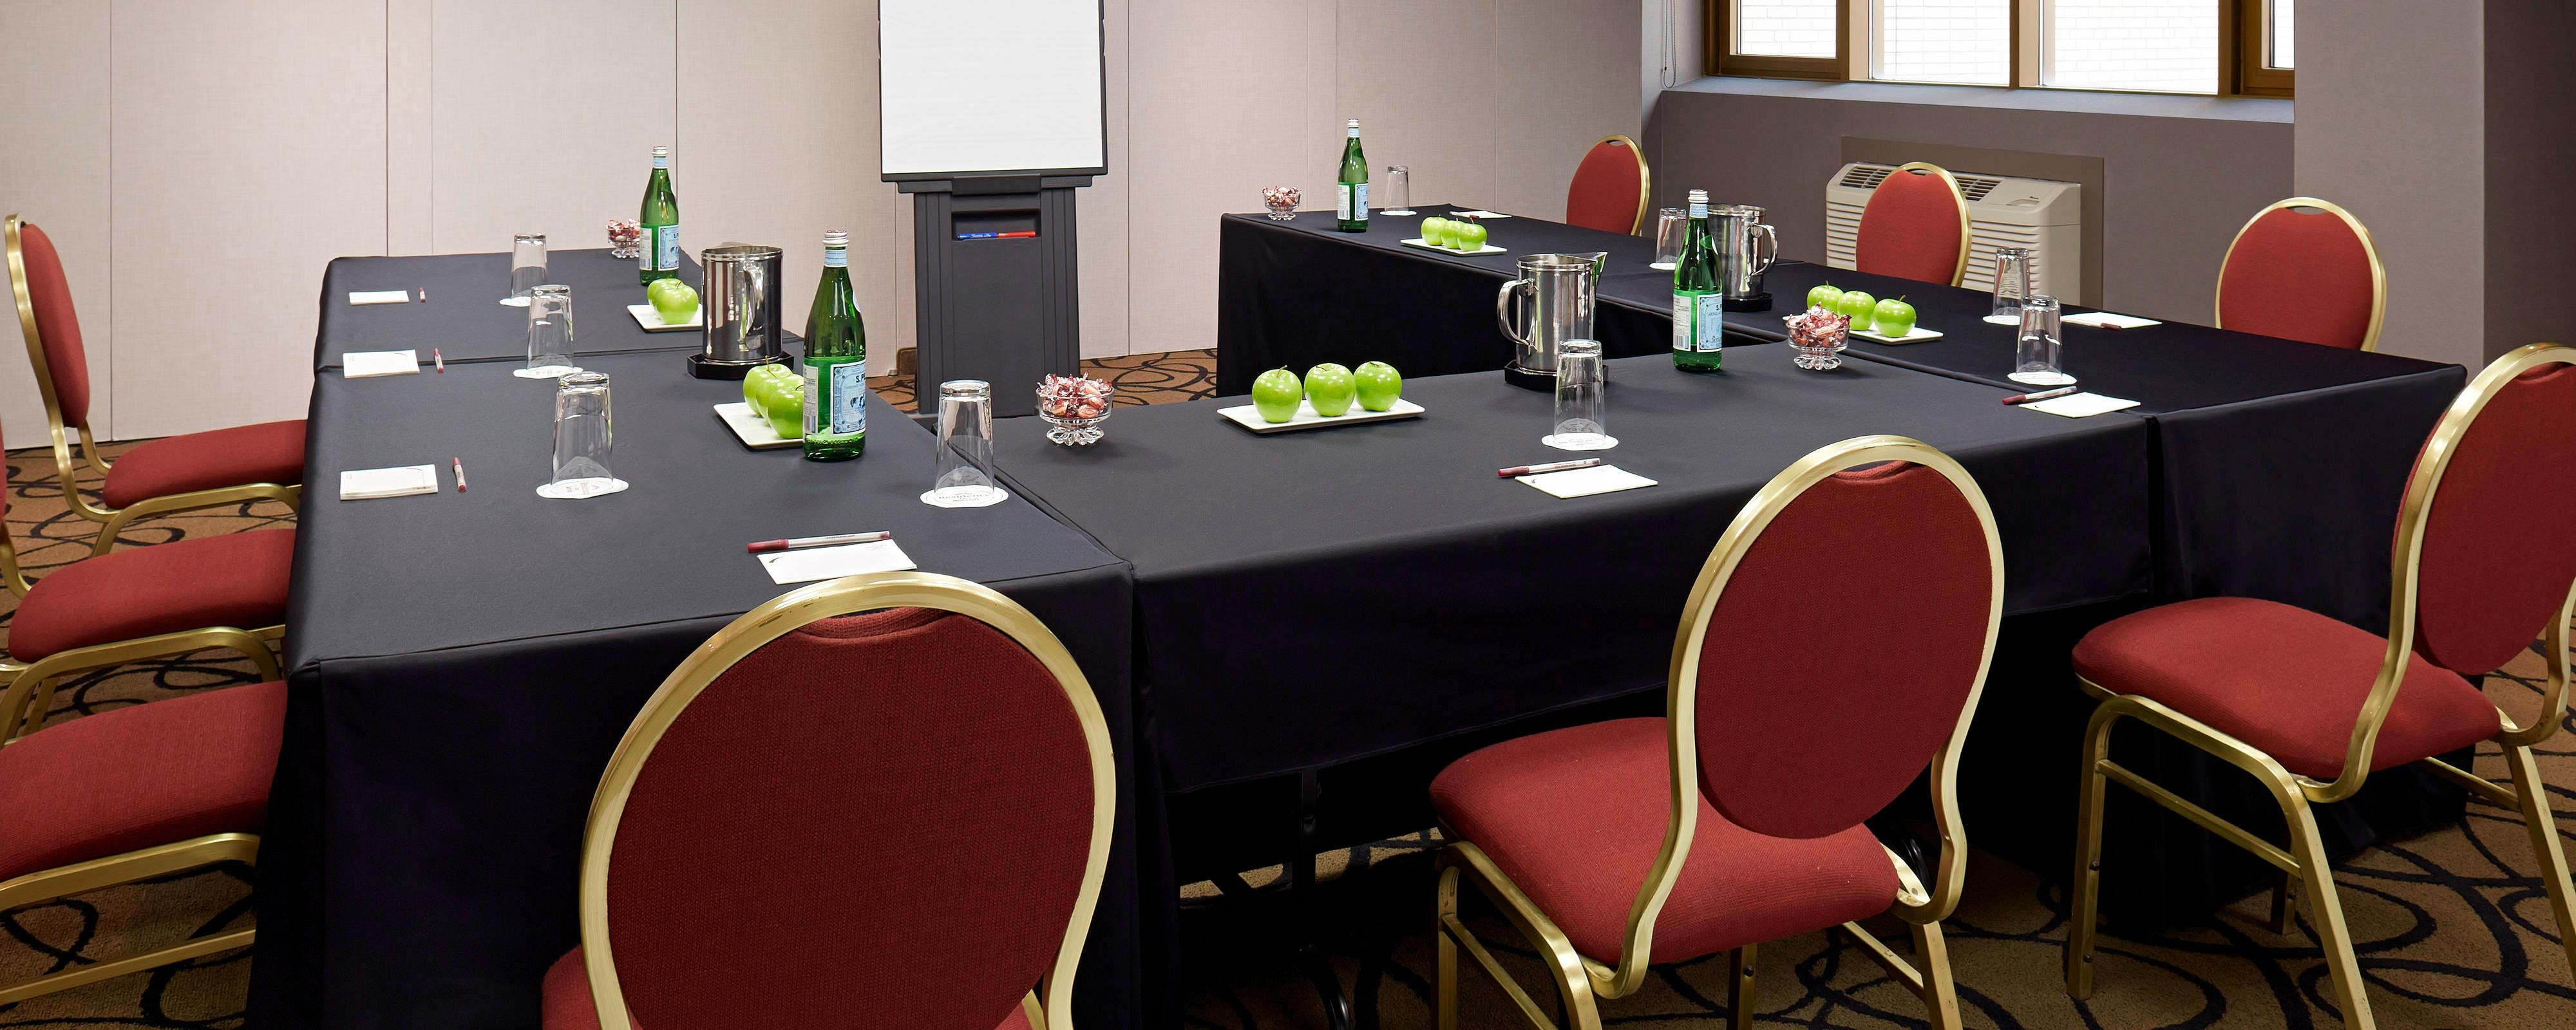 Meeting Space Montreal Hotel